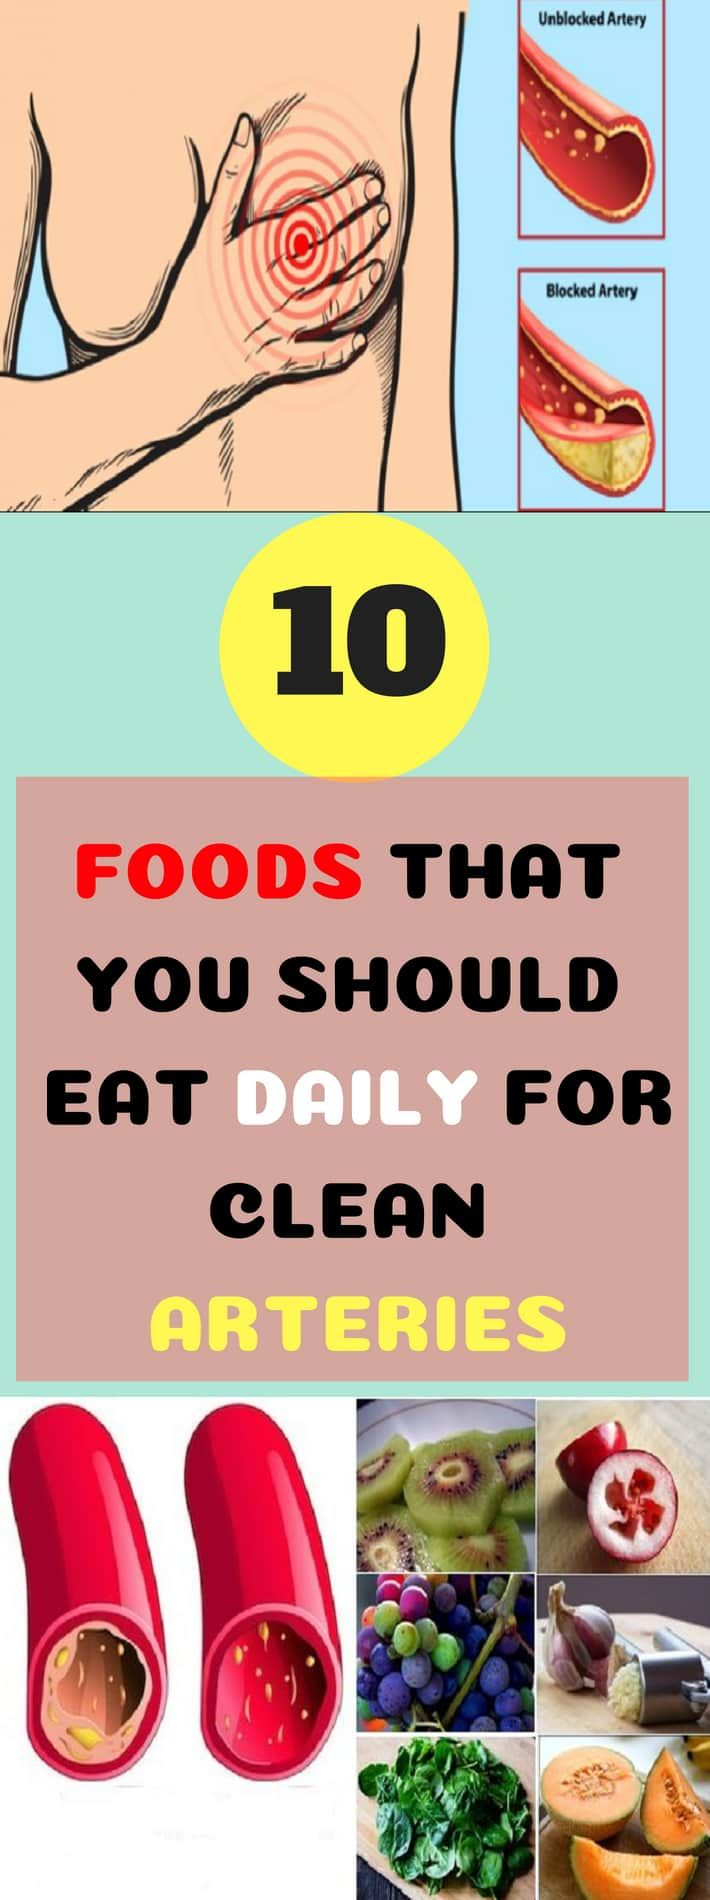 10 Foods That You Should Eat Daily For Clean Arteries Food Clean Arteries Daily Clean Arteries Health Arteries